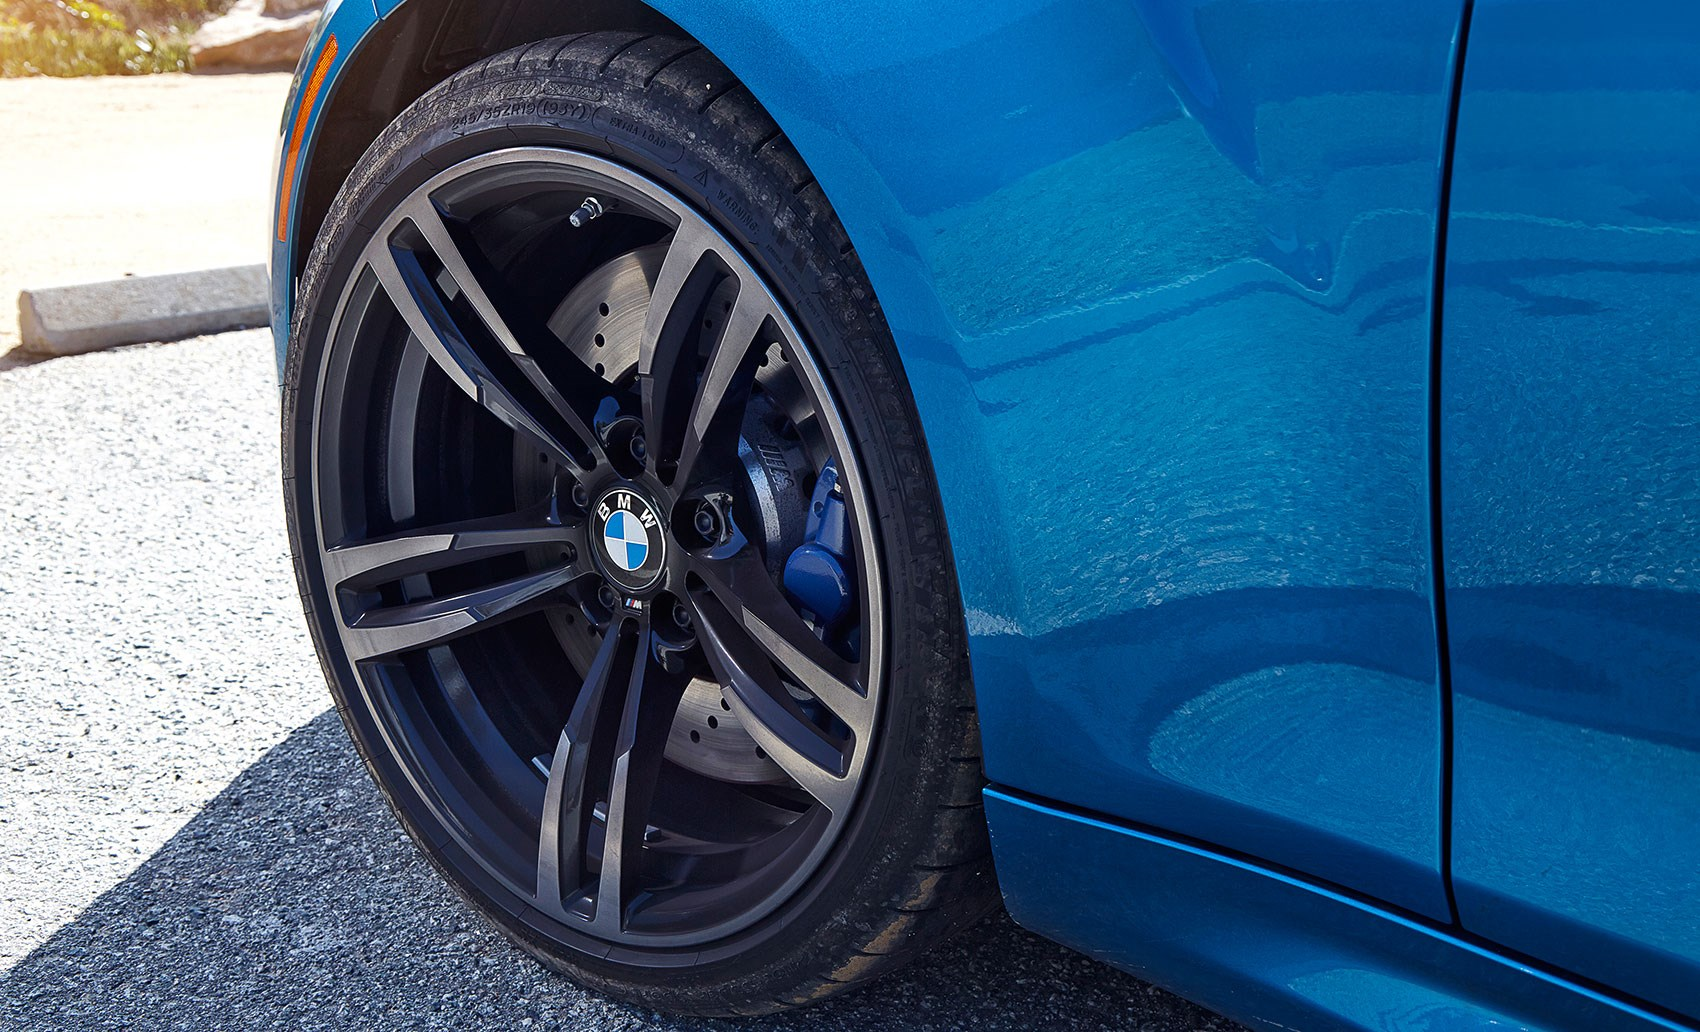 Up there with the best of M: 2016 BMW M2 review, CAR+ March 2016 ...